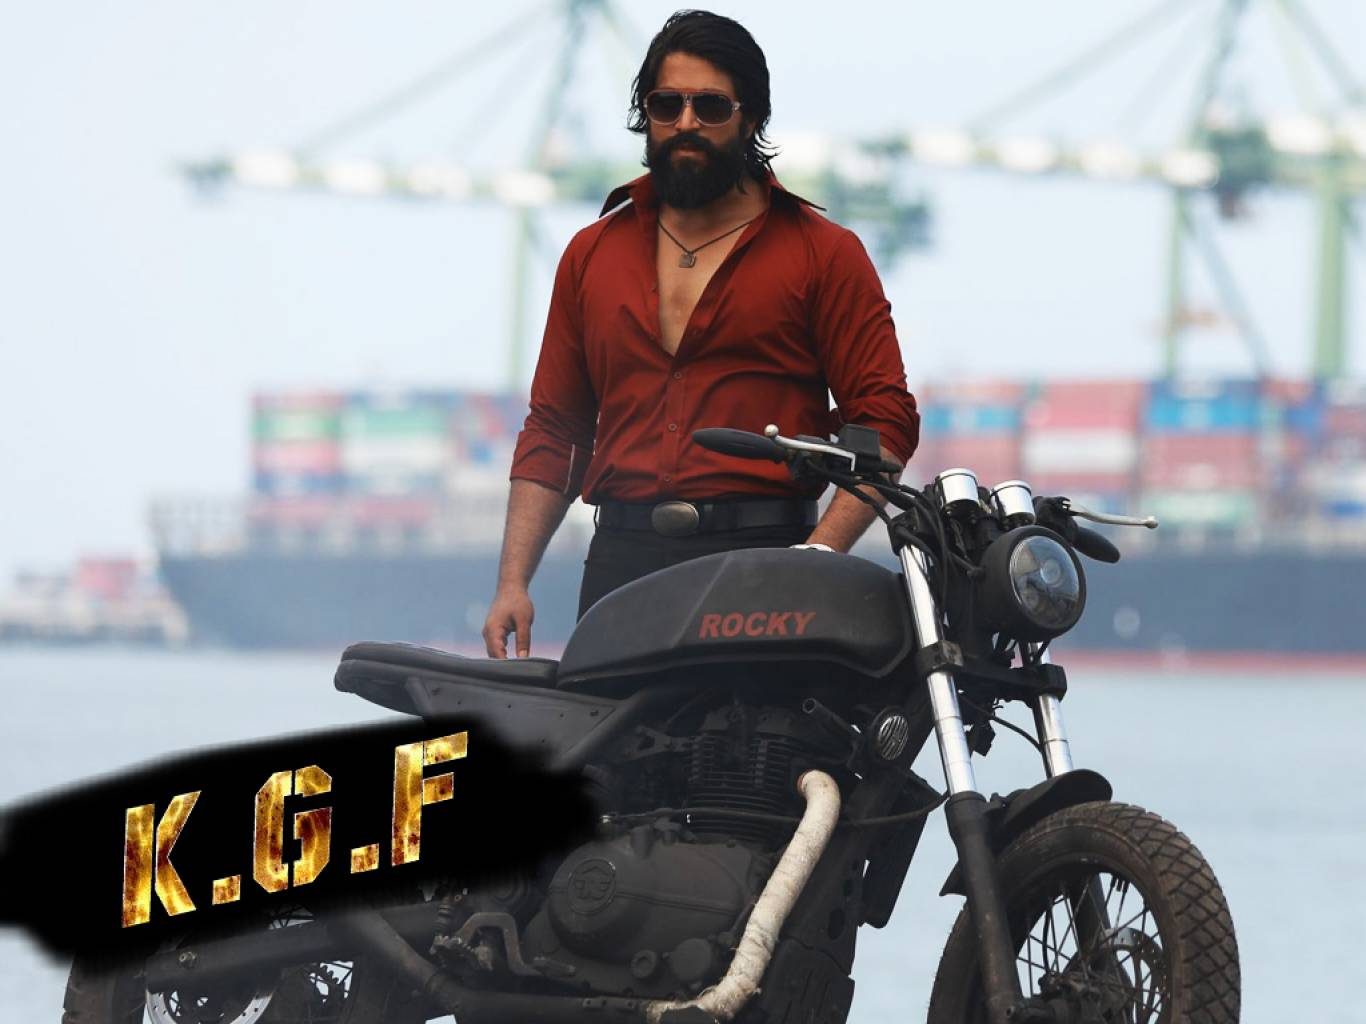 KGF Wallpapers